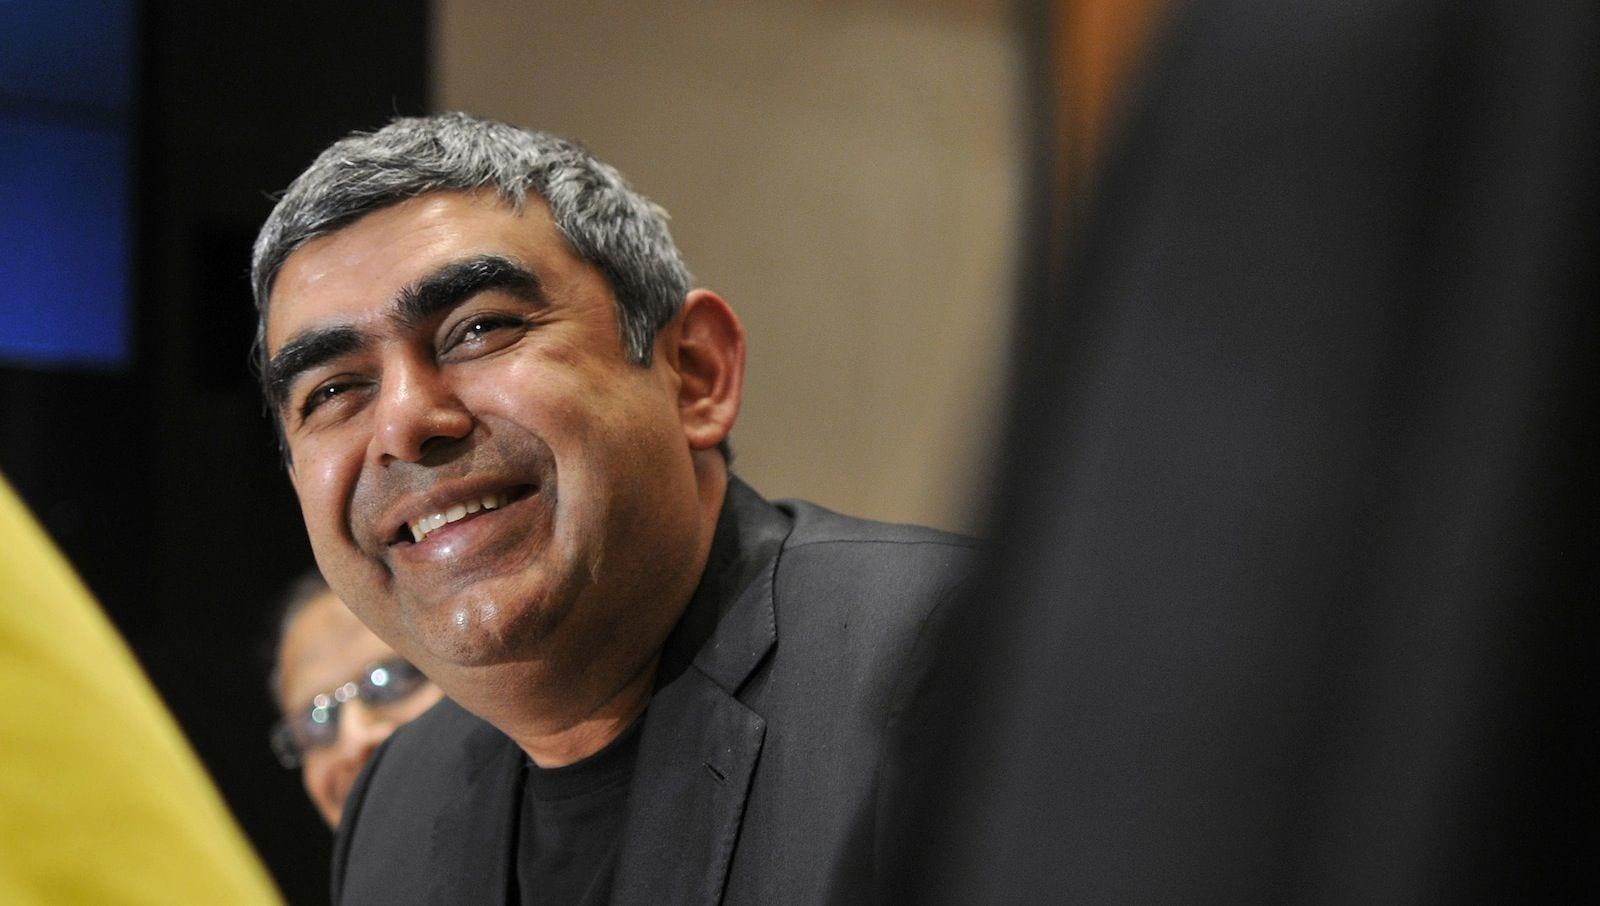 In an interesting development infosys ceo vishal sikka was chauffeured to work in a driverless autonomous golf cart which is built by the company s